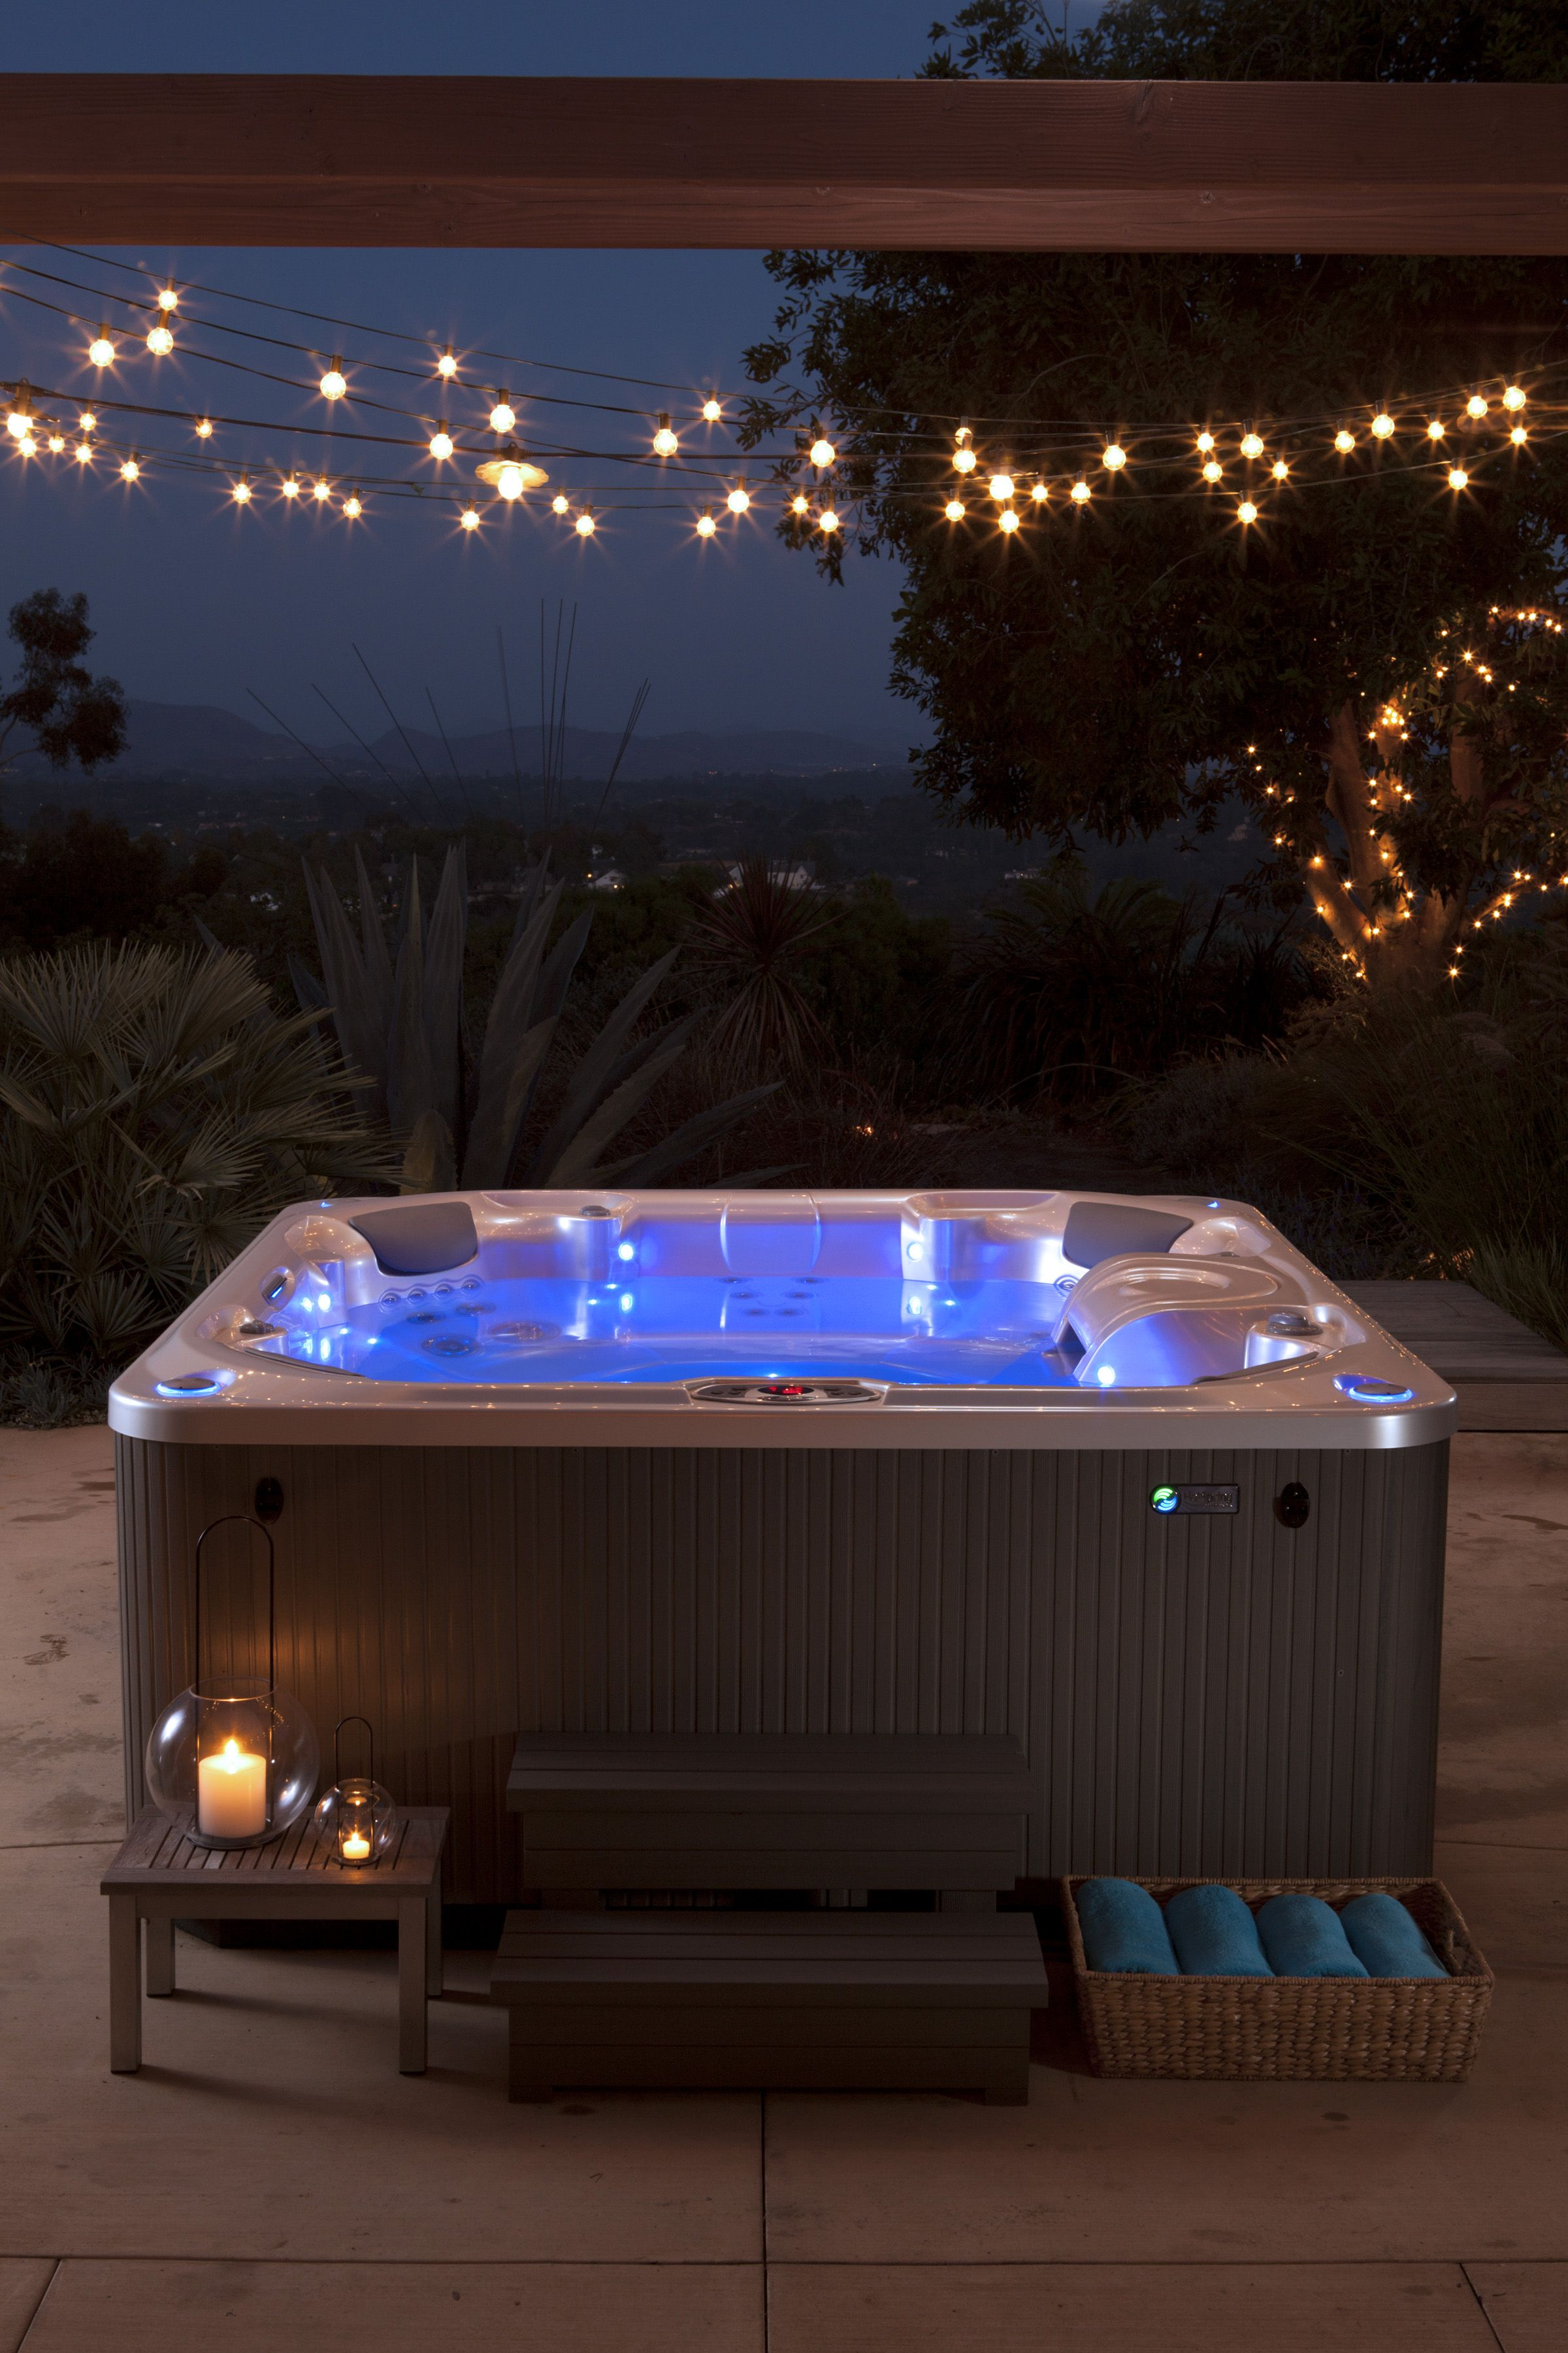 tub good product now person we very has team spot from prices quality our amazing are absolutely start years the been love have had gail central hotspring img service and is hot it relay springs